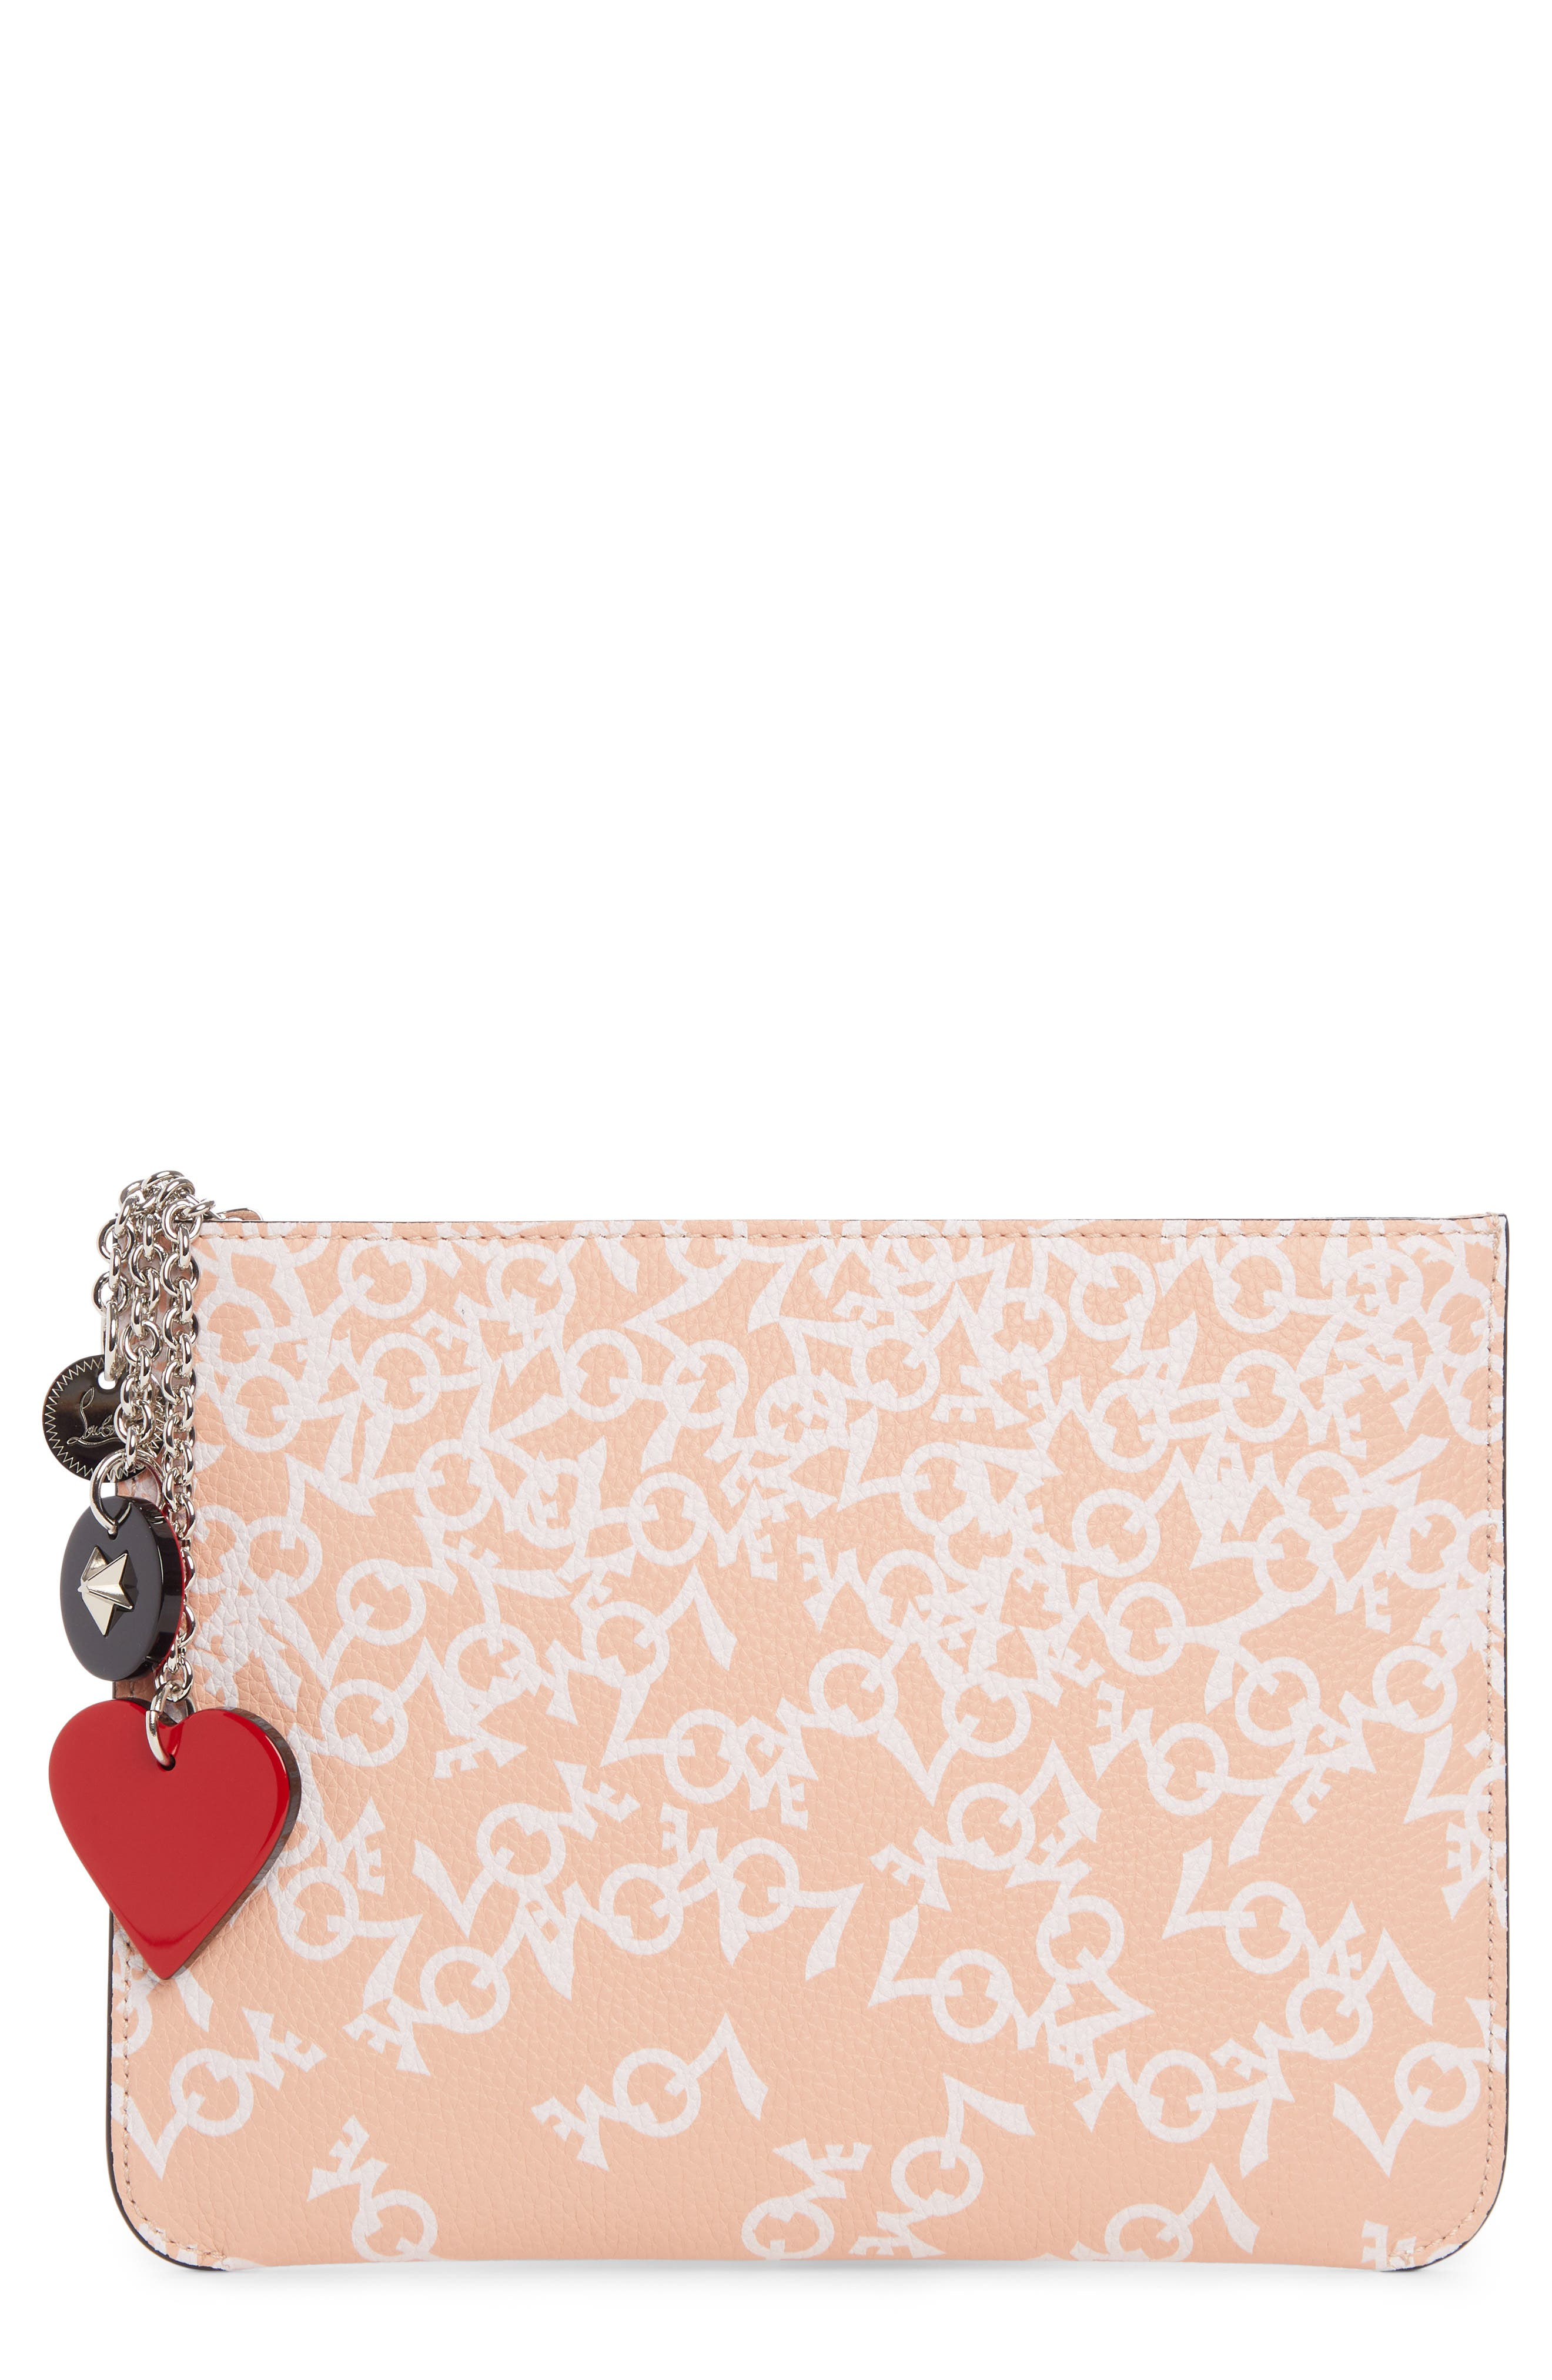 Christian Louboutin Loubicute Crazy Love Leather Pouch